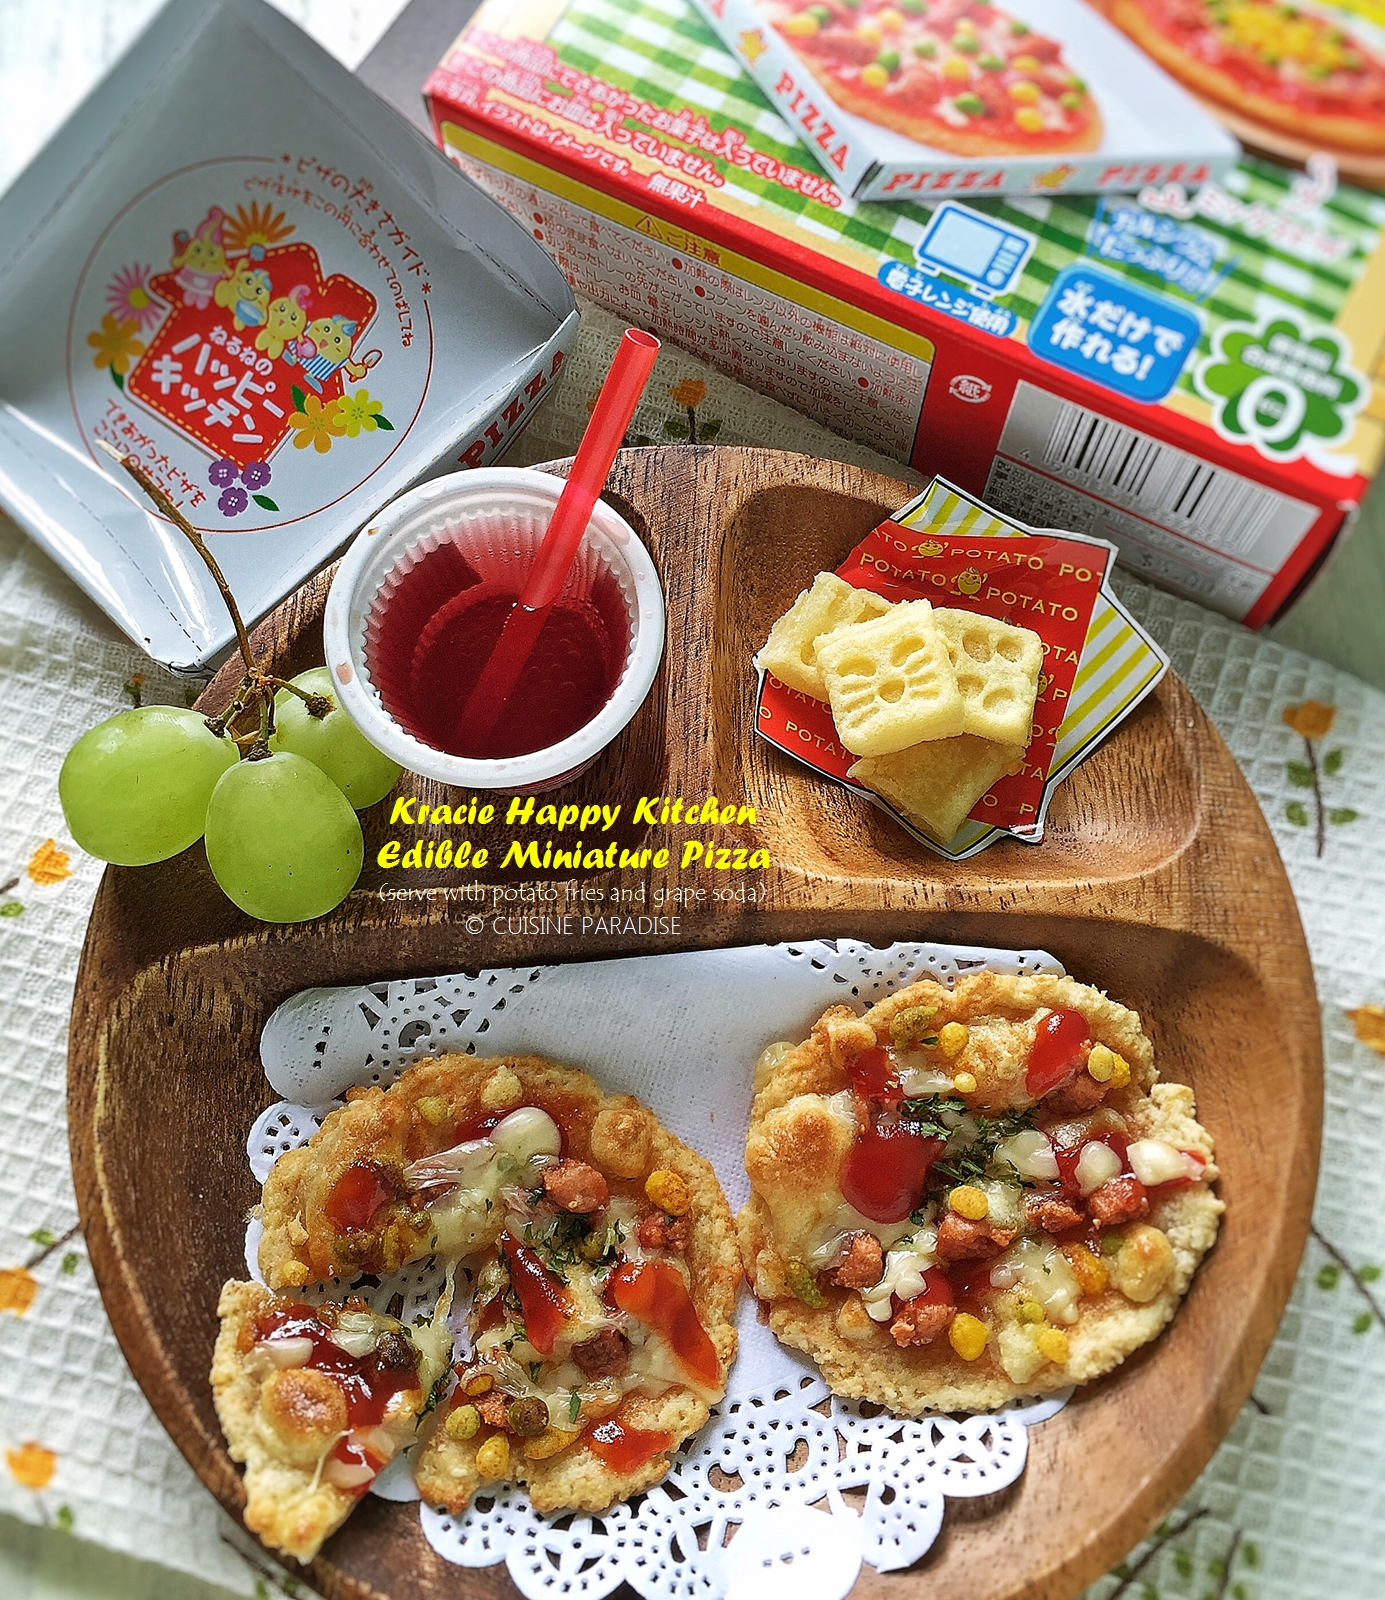 Cuisine paradise singapore food blog recipes reviews and recipe video kracie happy kitchen edible miniature pizza kit forumfinder Images